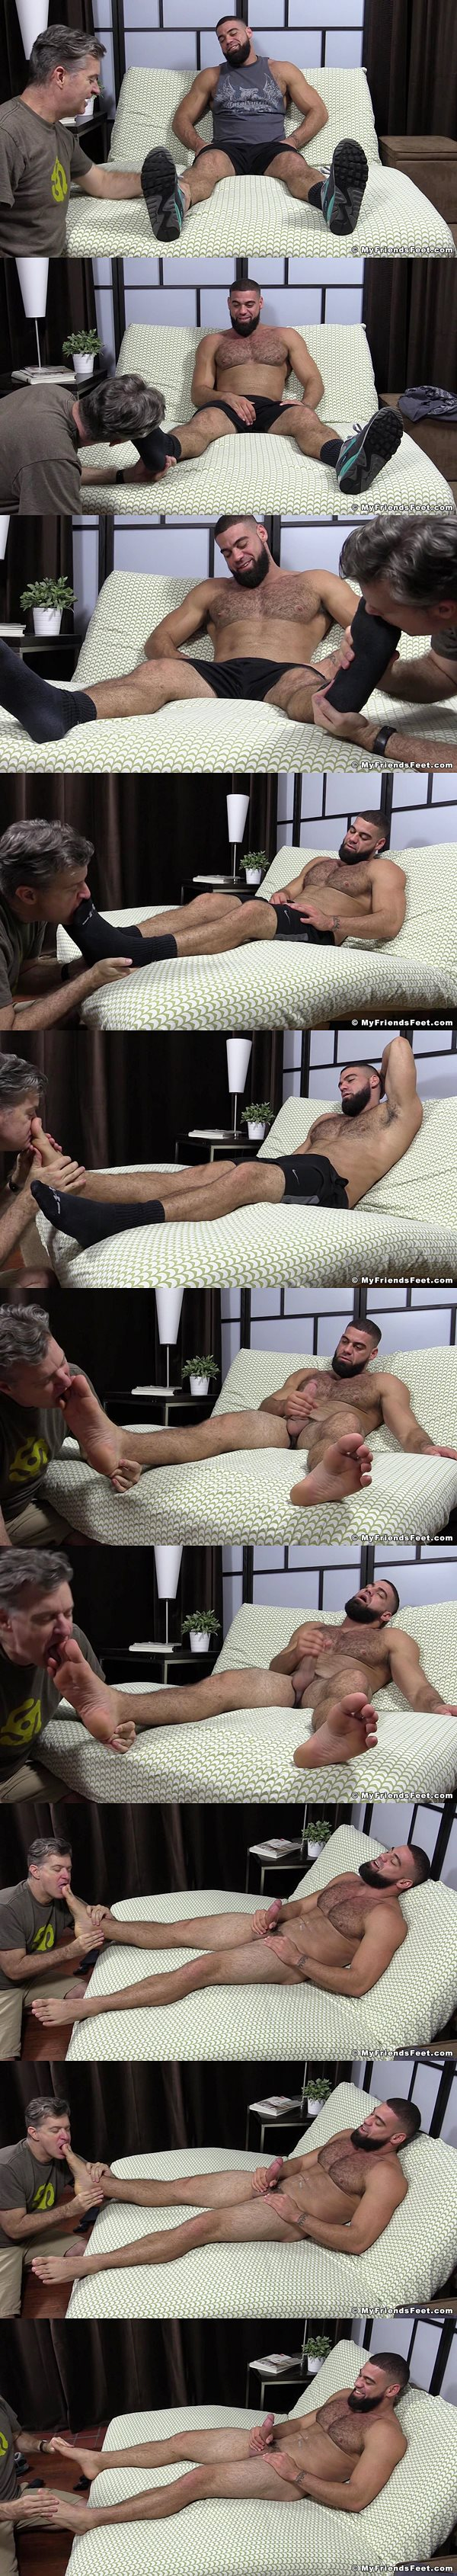 Karl Tickled & Ricky Larkin Foot Worshiped 03